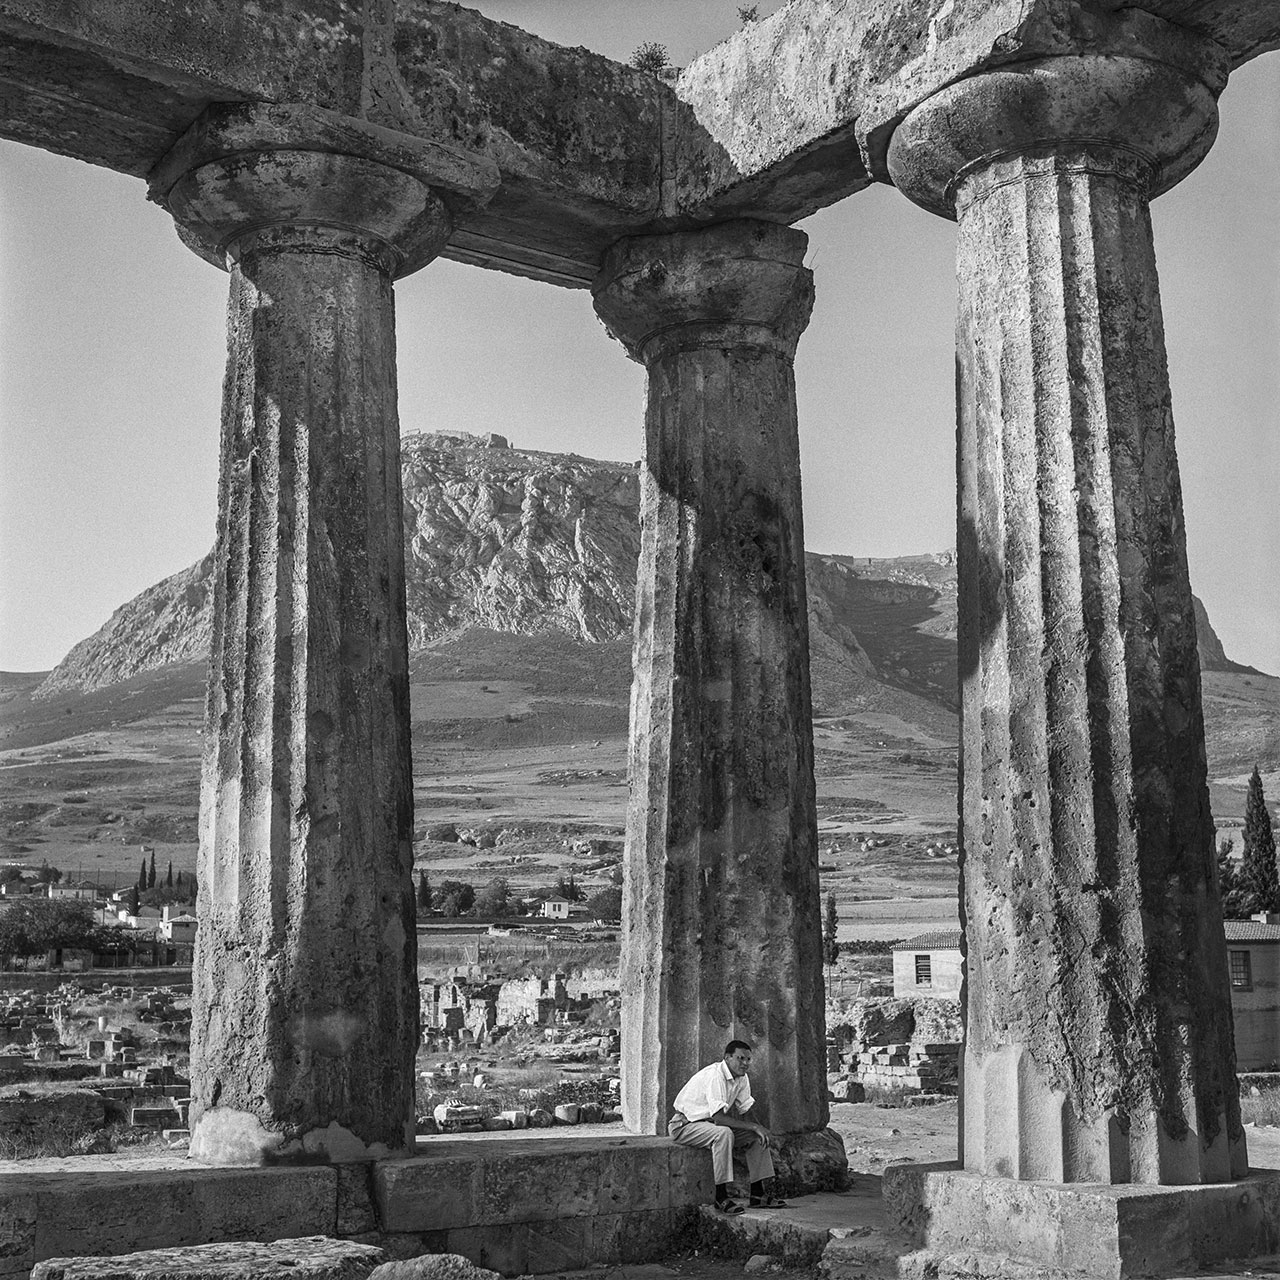 Corinth 1961. Photo © Robert McCabe.